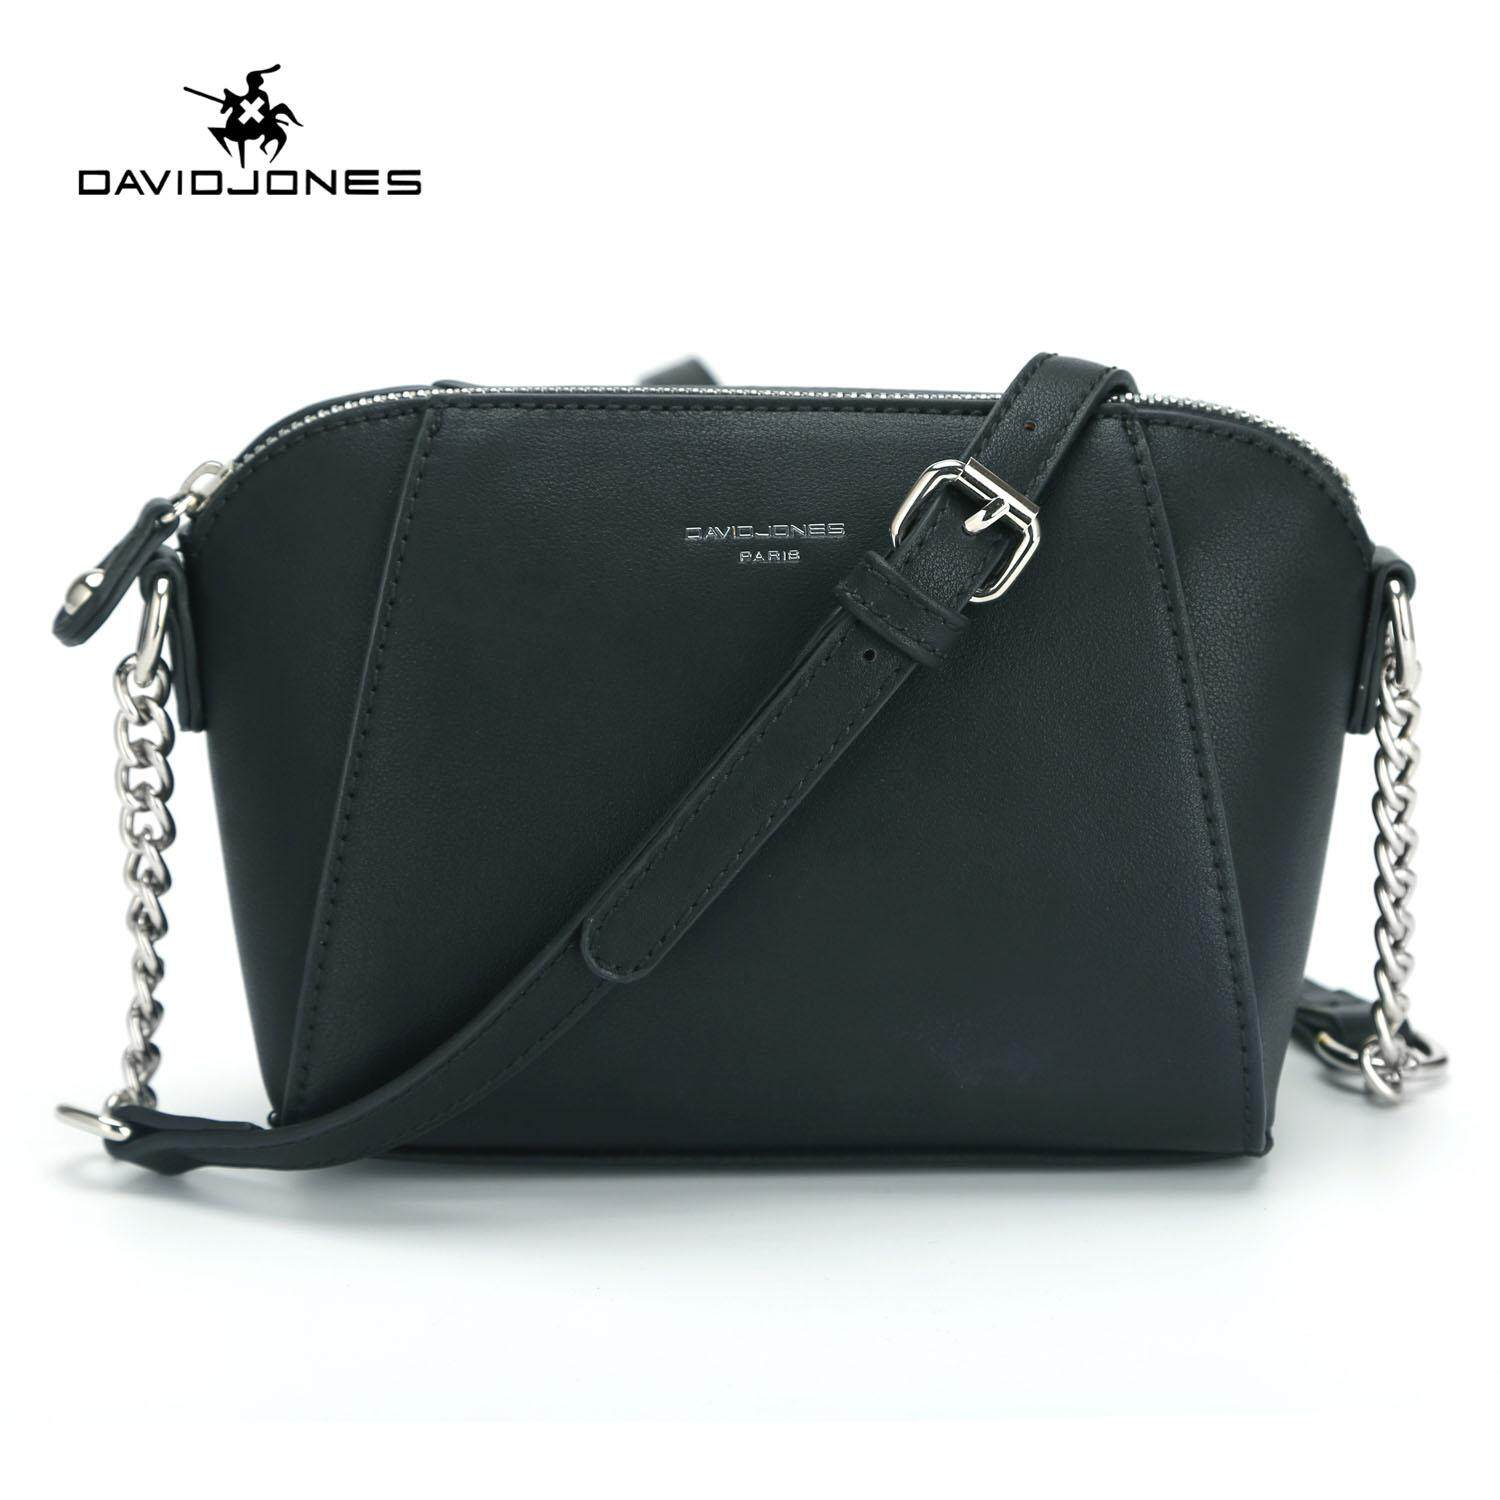 Davidjones Women Handbag Pu Leather Female Crossbody Bag Small Lady Chain Shoulder Casual Messenger